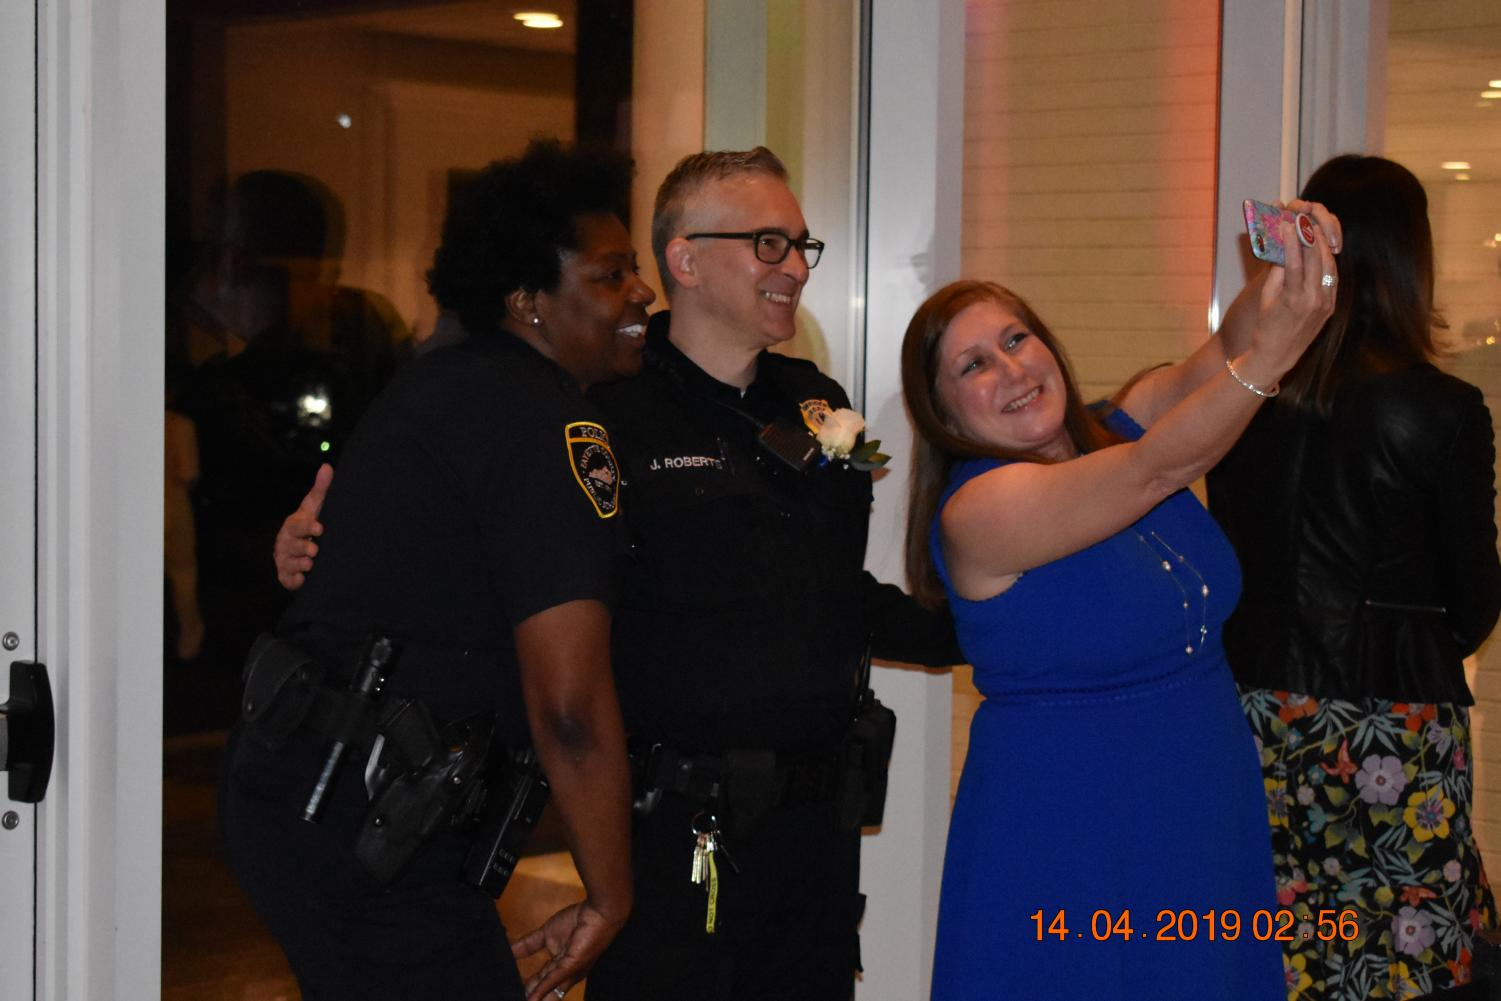 Ms.+Hardin+caught+taking+a+selfie+with+Officers+Scott+and+Roberts.